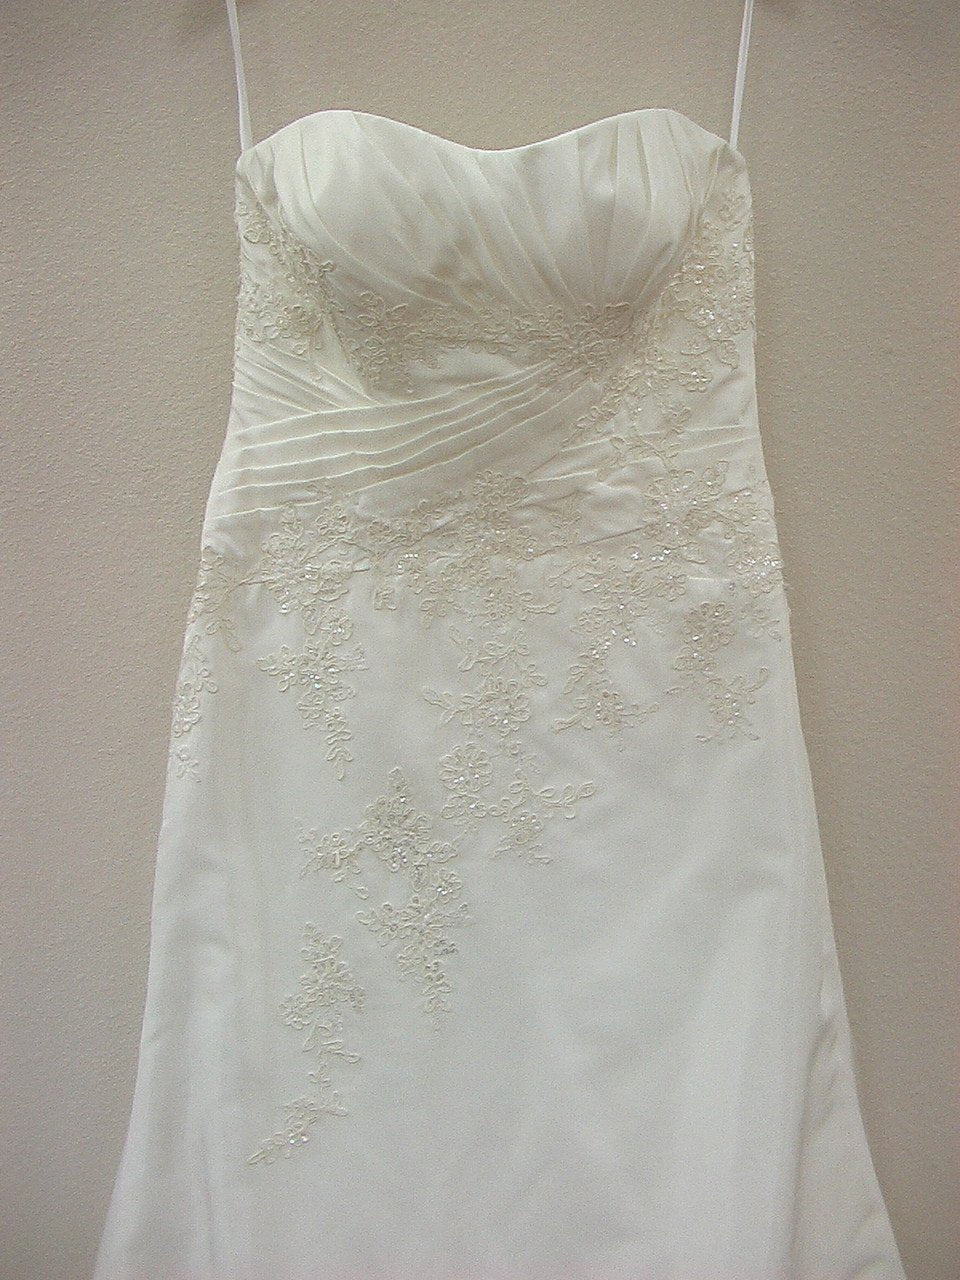 Allure 2315 Ivory size 12 New In Stock Wedding Dress